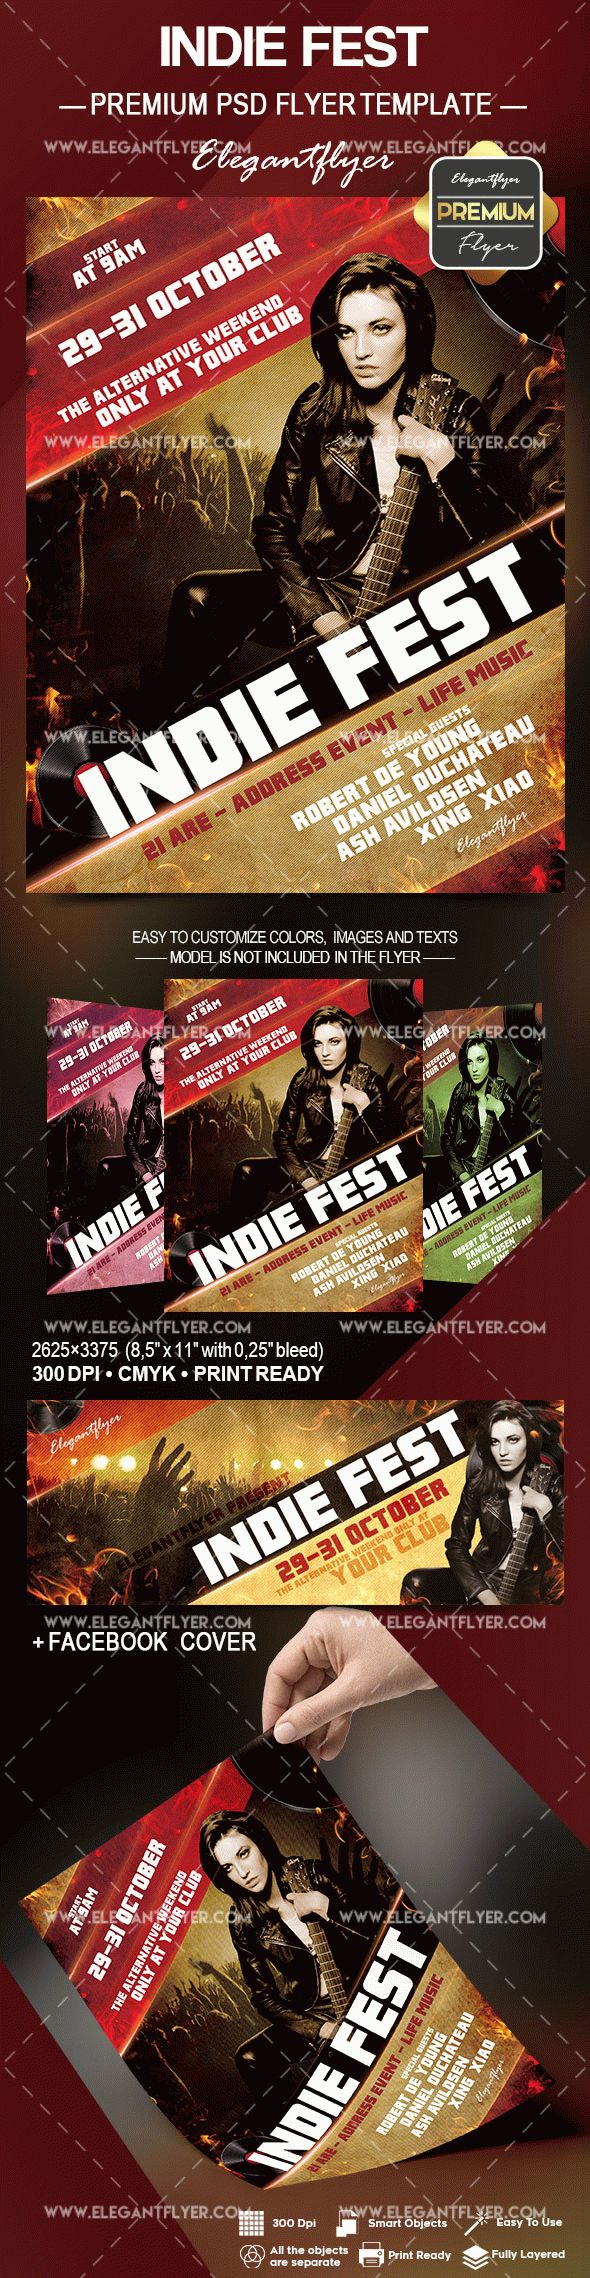 Indie Fest Invitation Flyer